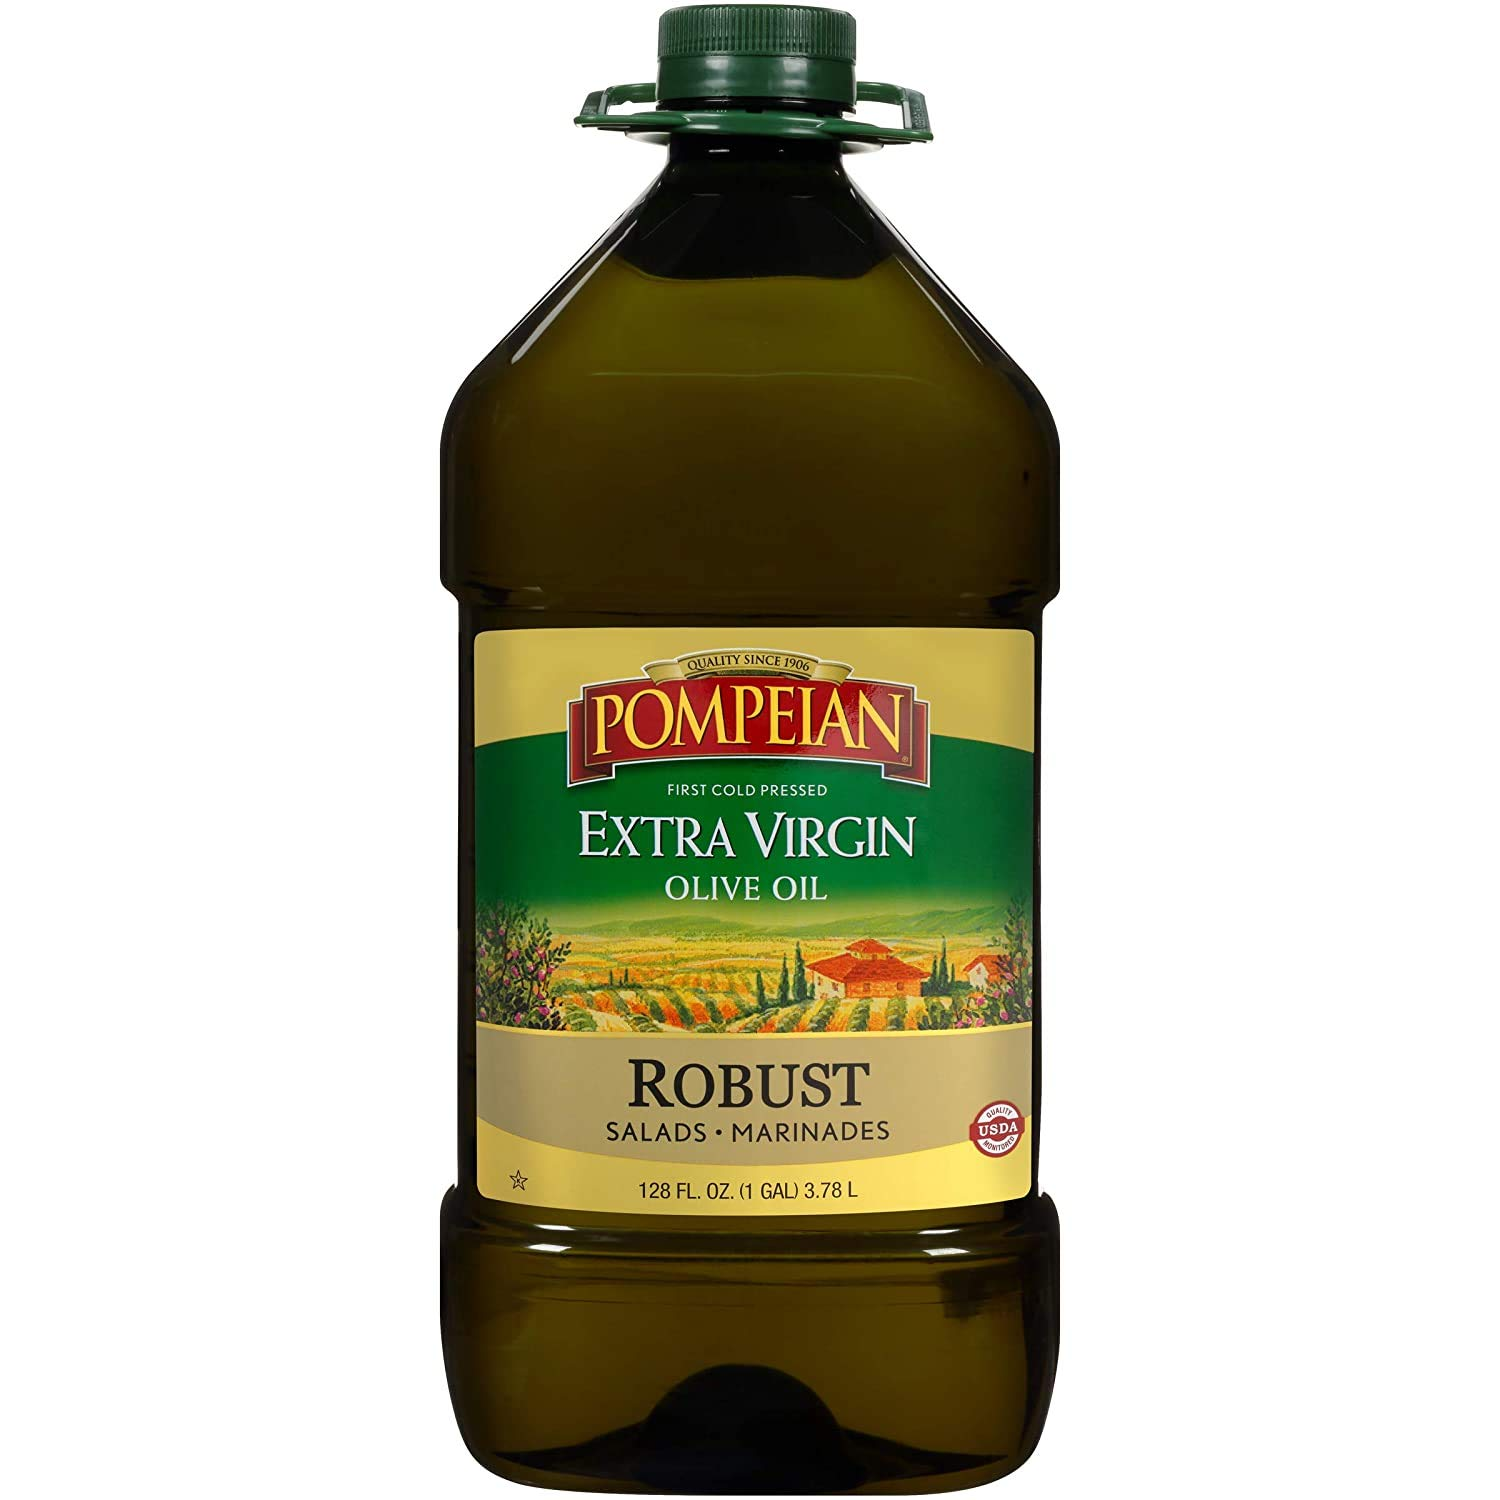 Pompeian Robust Extra Virgin Olive Oil, First Cold Pressed, Full-Bodied Flavor, Perfect for Salad Dressings and Marinades, Naturally Gluten Free, Non-Allergenic, Non-GMO, 128 FL. OZ., Single Bottle